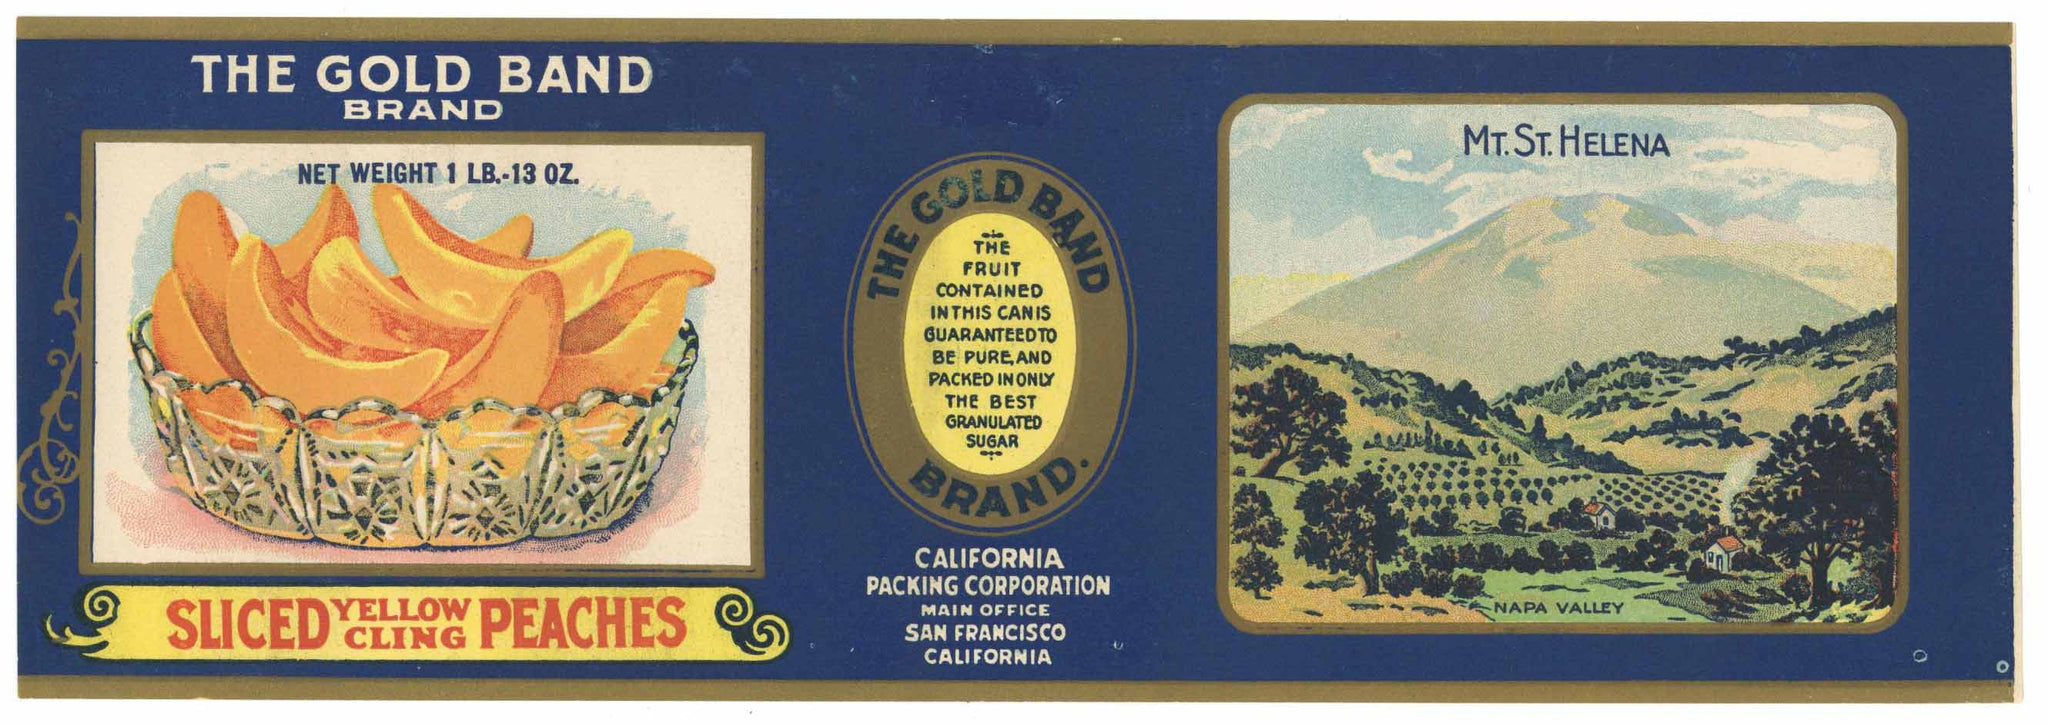 The Gold Band Brand Vintage Napa Valley Peach Can Label